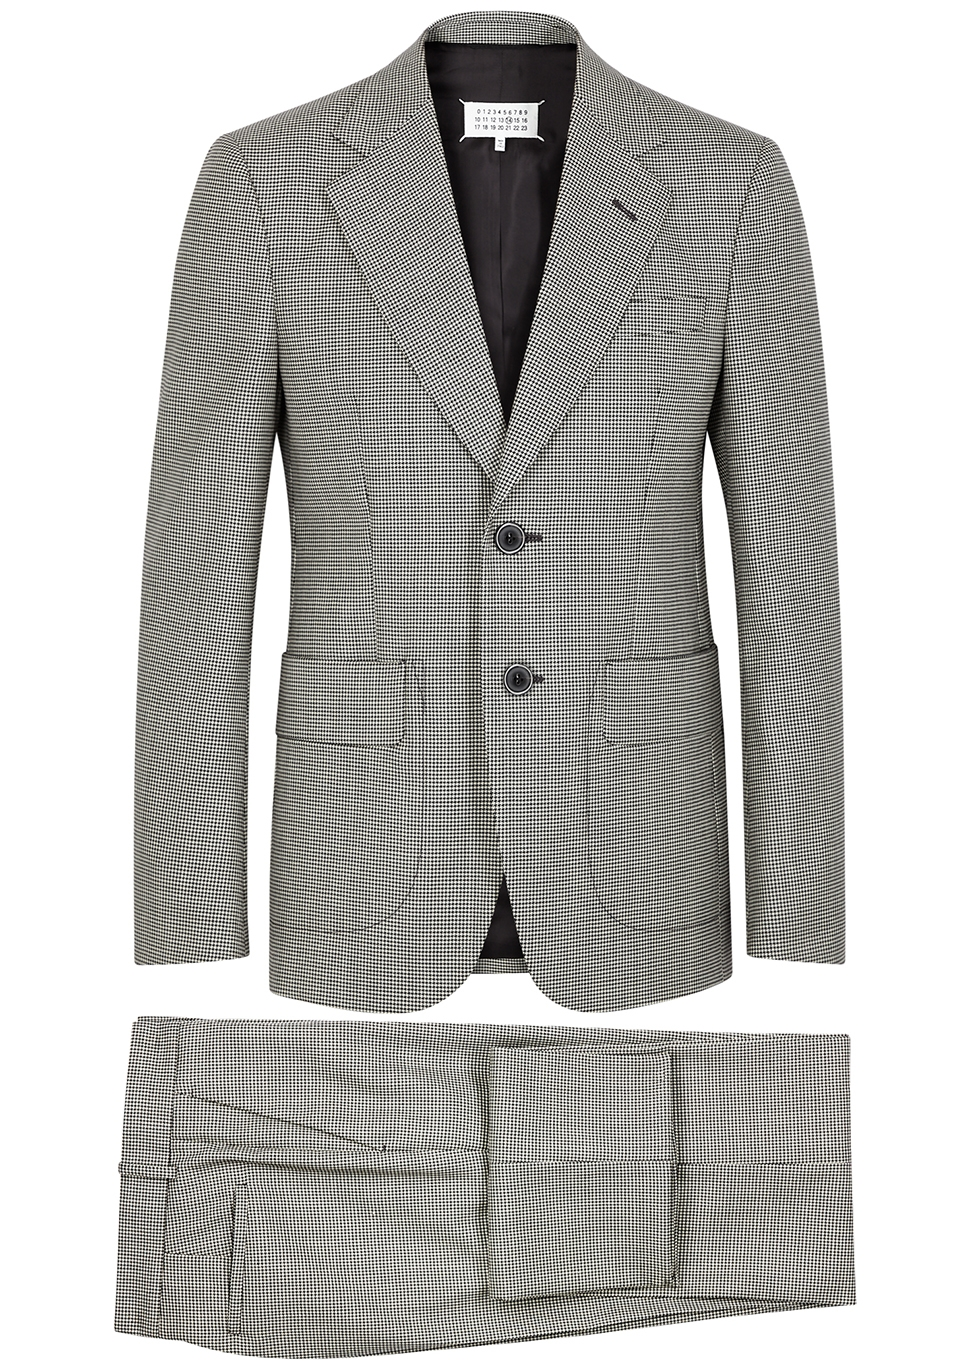 Monochrome houndstooth wool suit